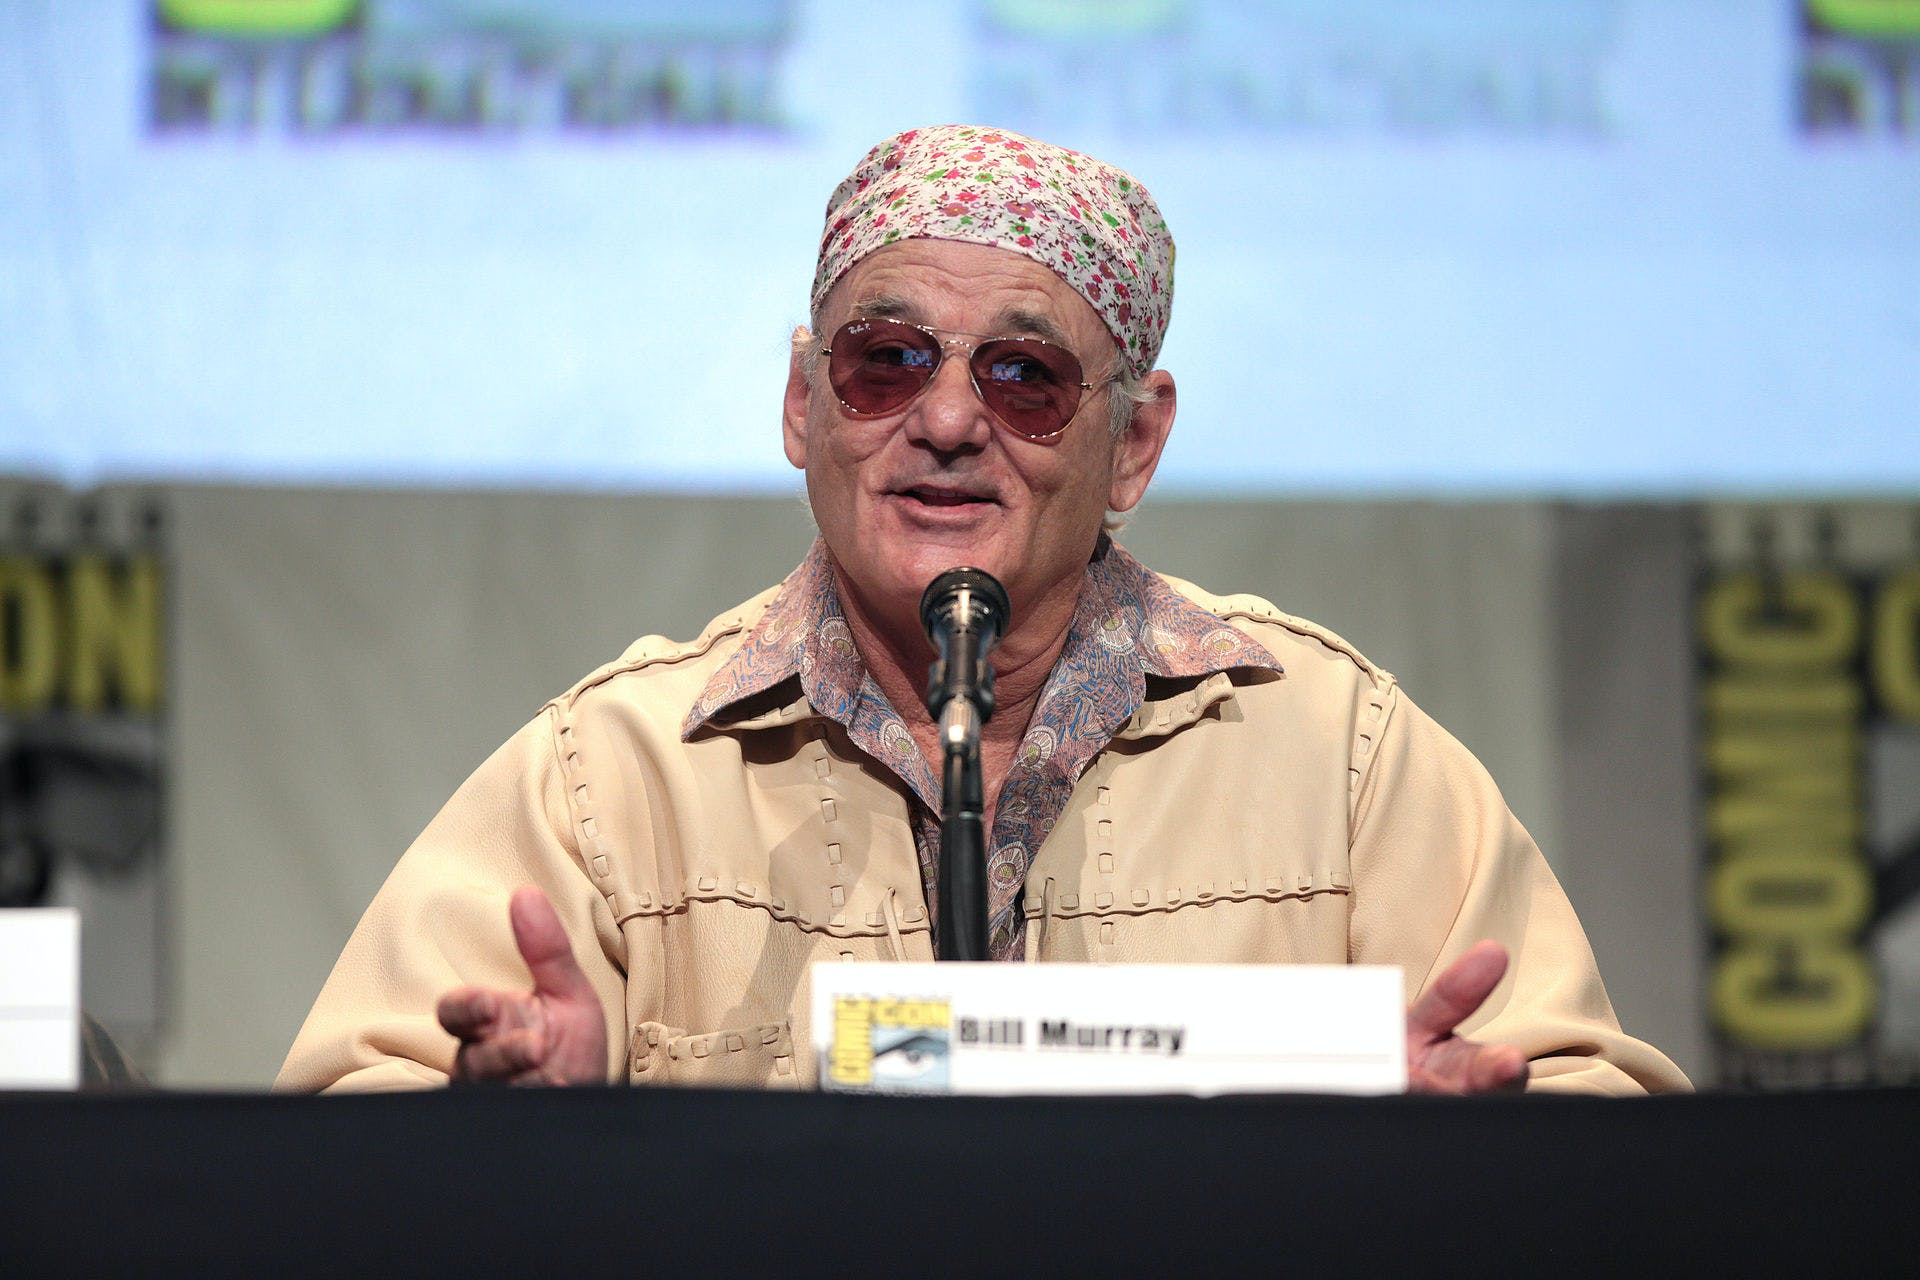 Bill Murray is in Herb's roundup of the best weed quotes throughout history.